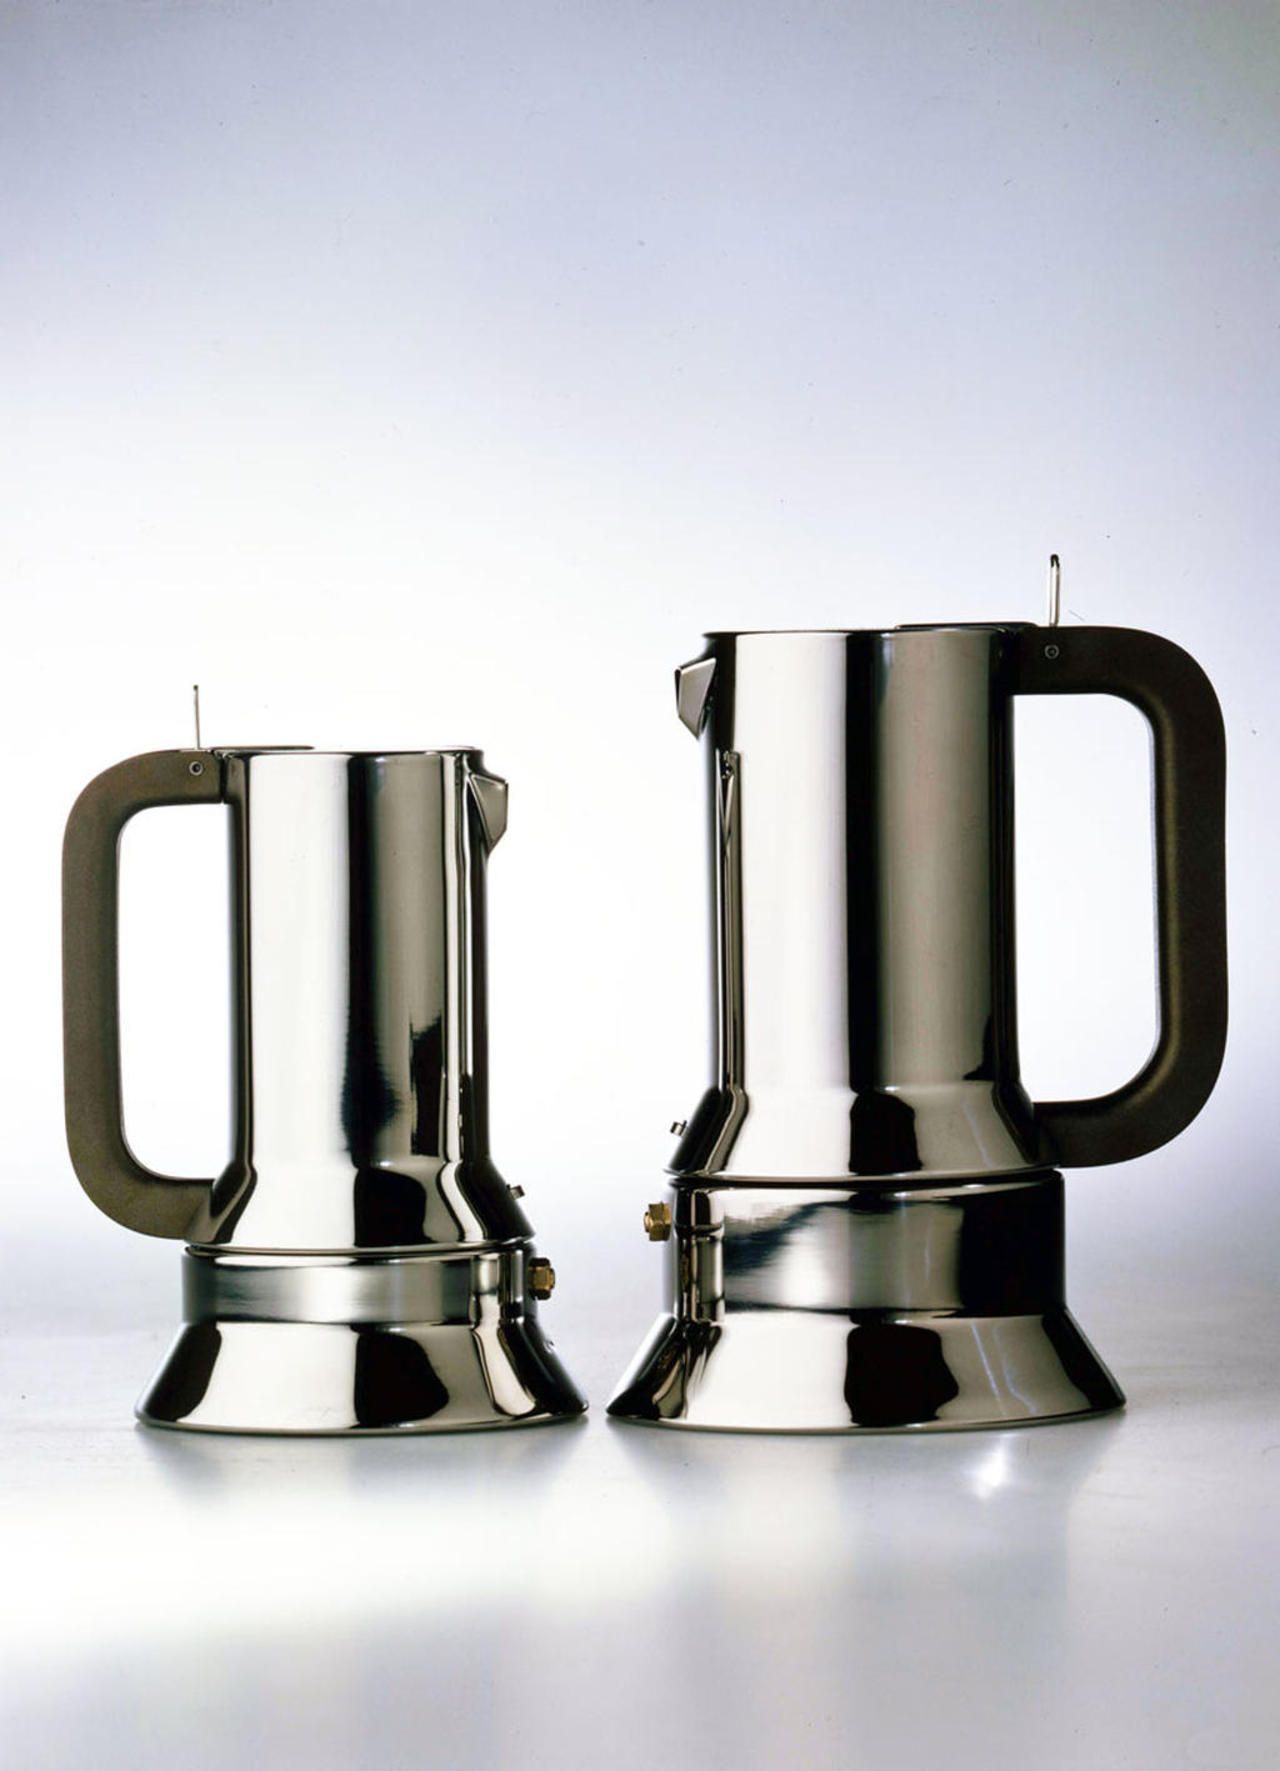 Automatic Espresso Coffee Makers Review(이미지 포함) 제품 디자인